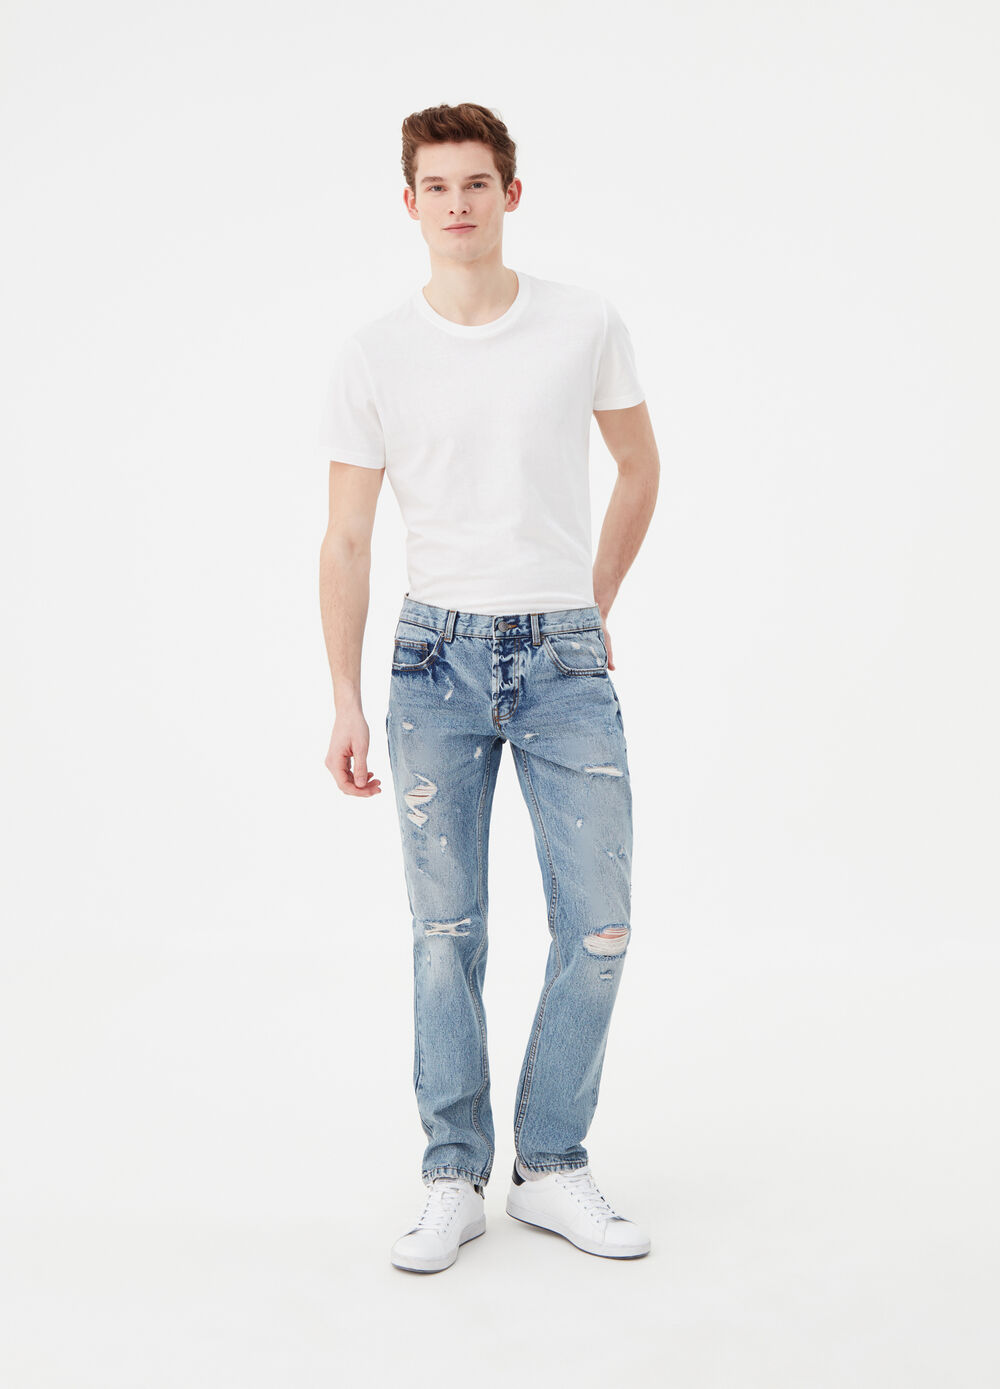 Slim-fit jeans with rips and cuts